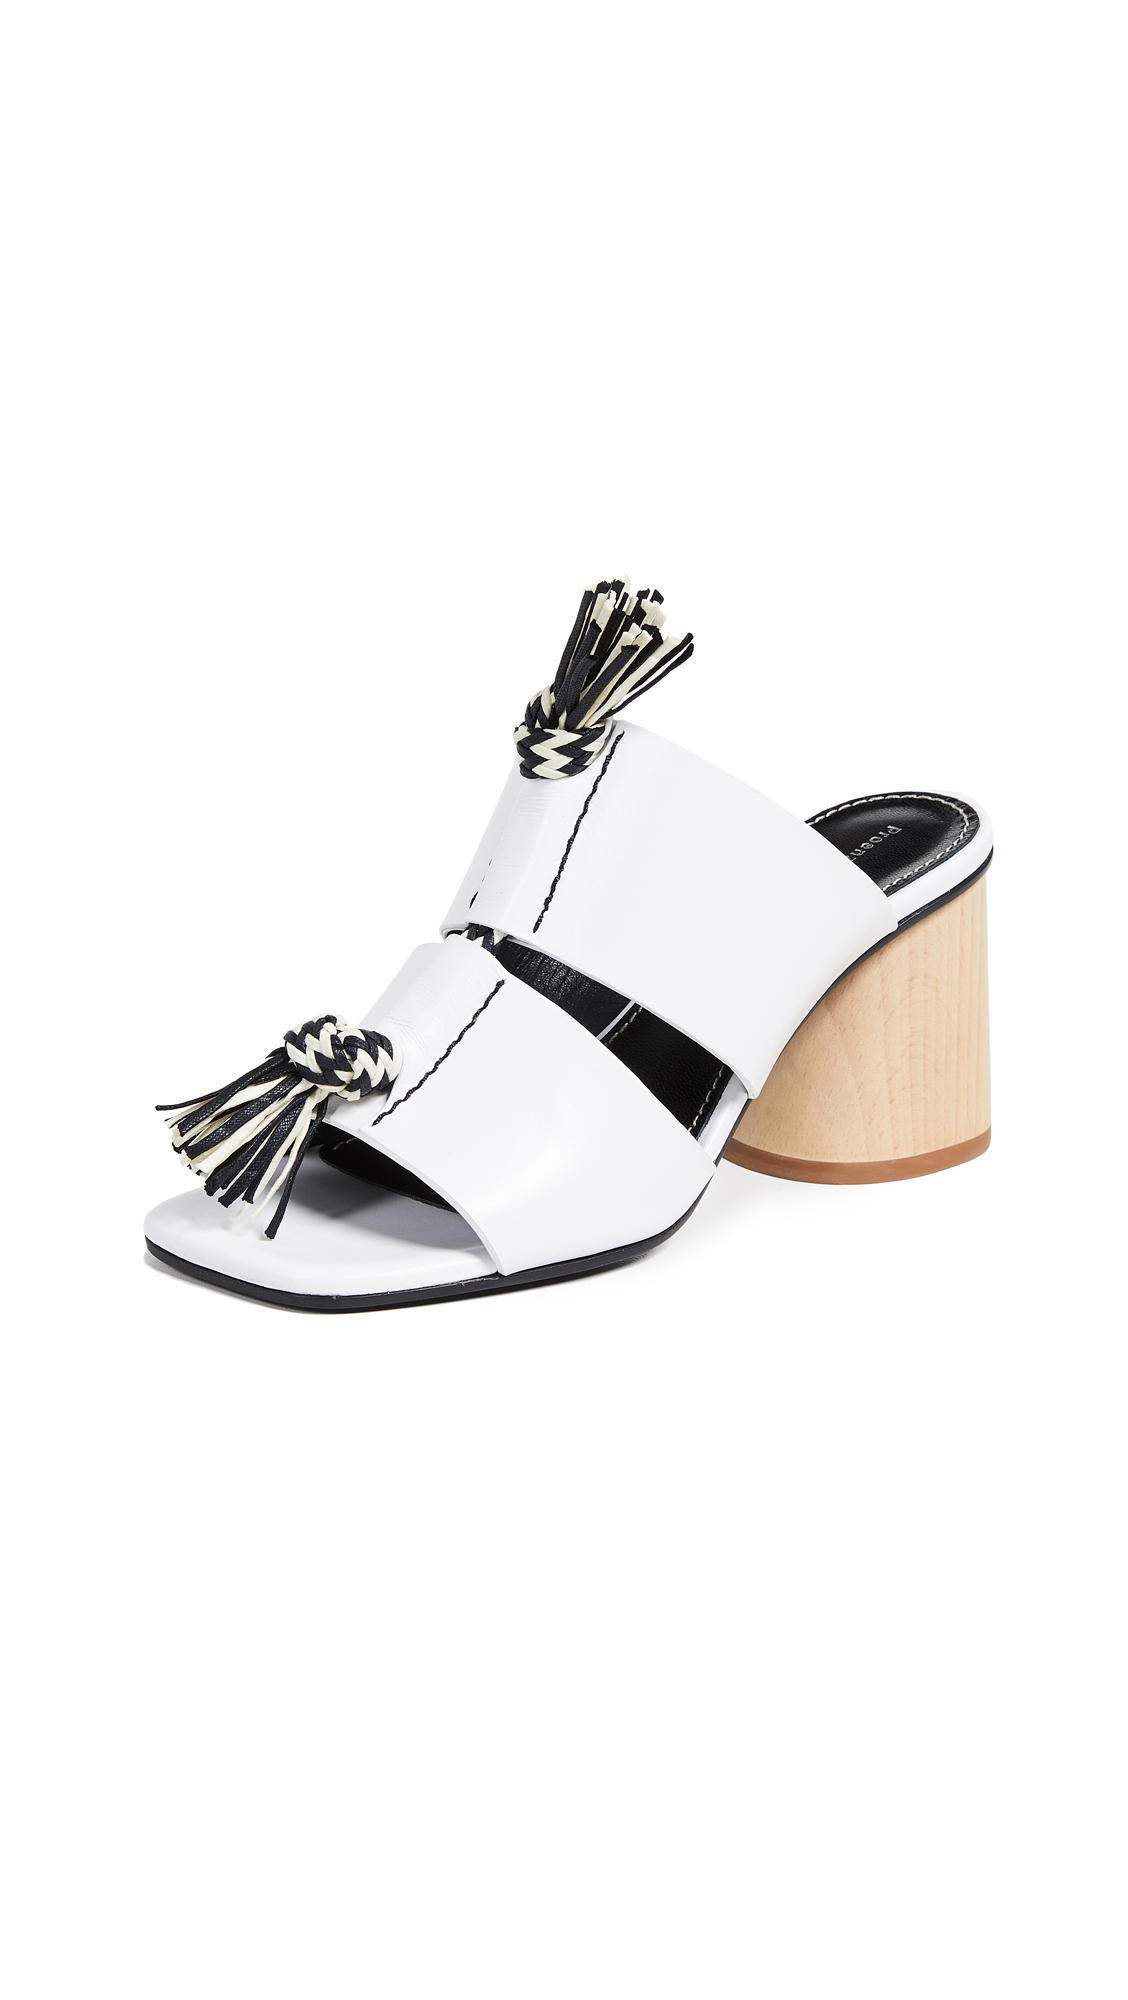 Leather Mules With Rope Detail in White/White/Black